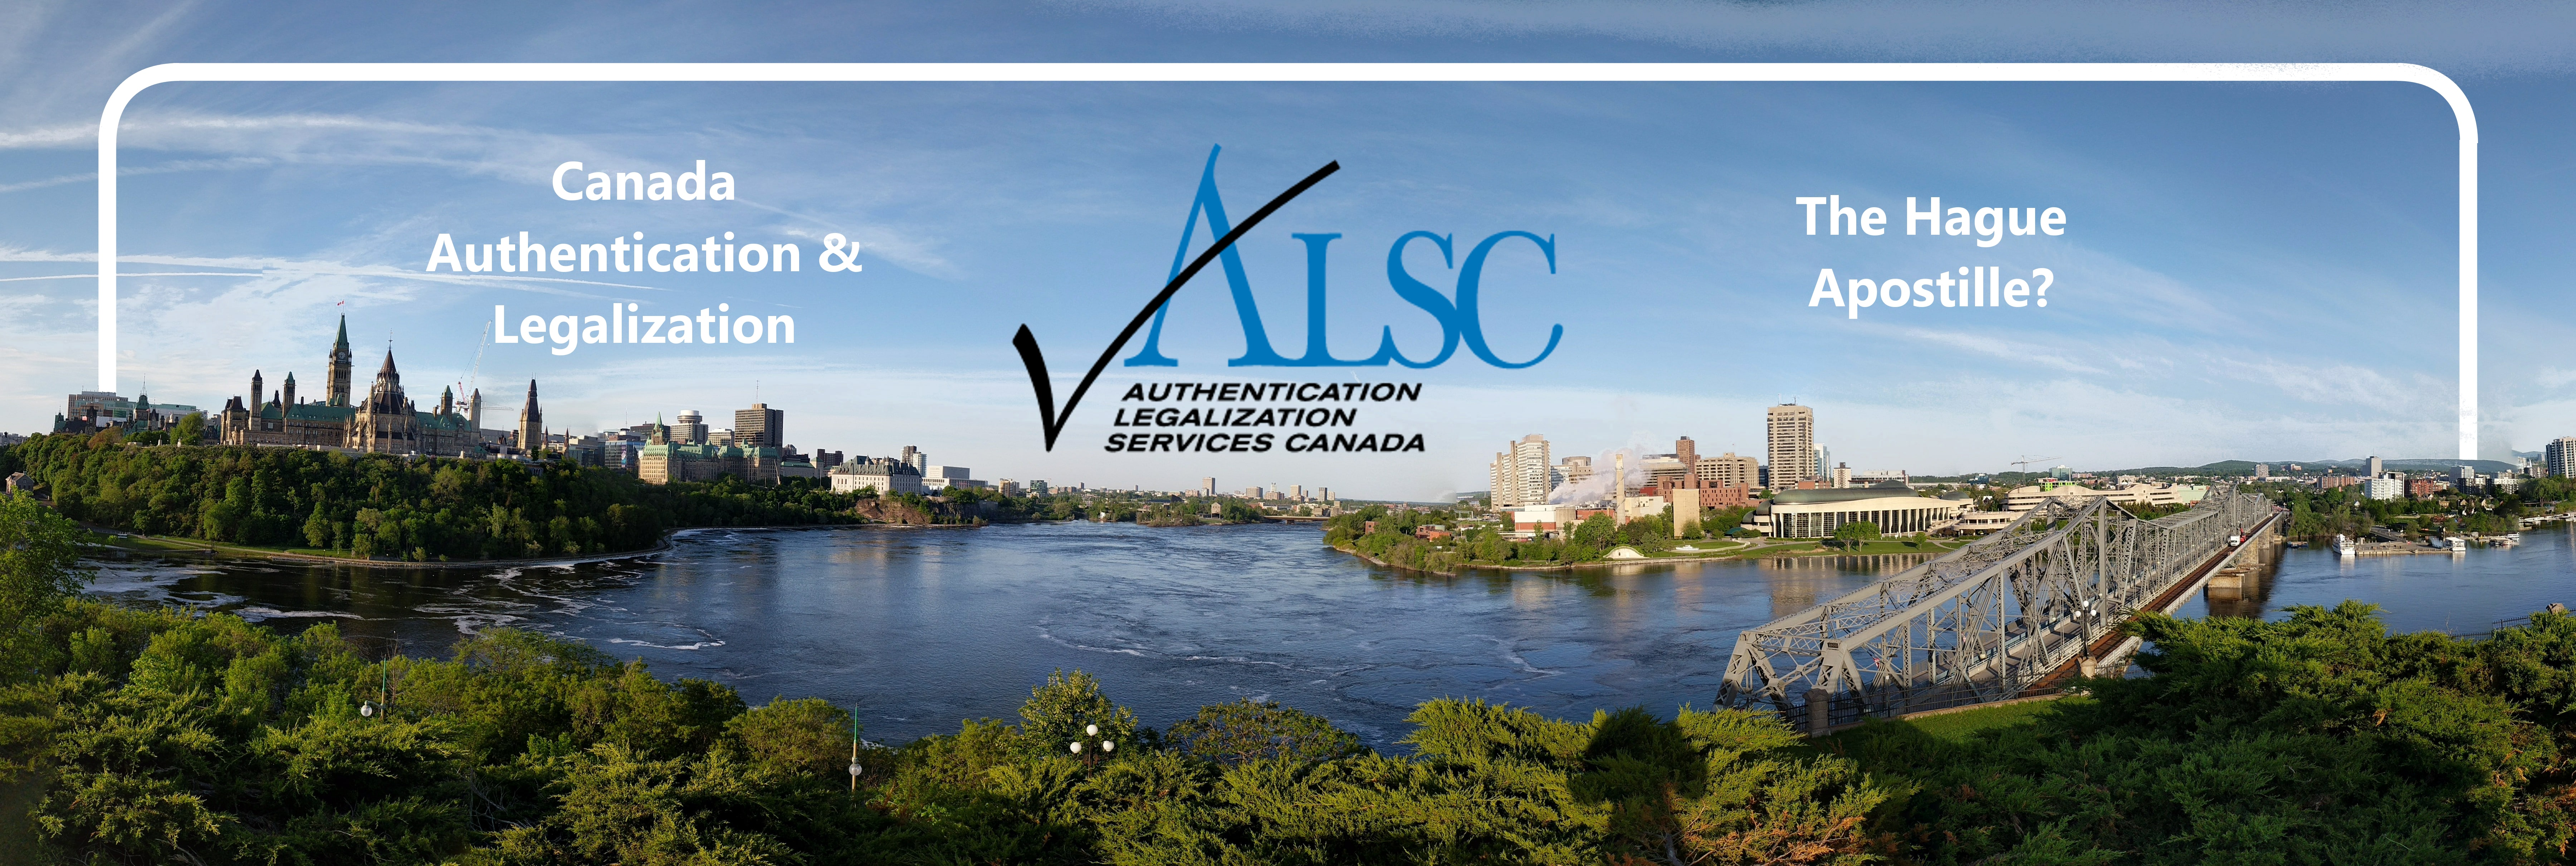 Apostille Information Canada - What You Need To Know